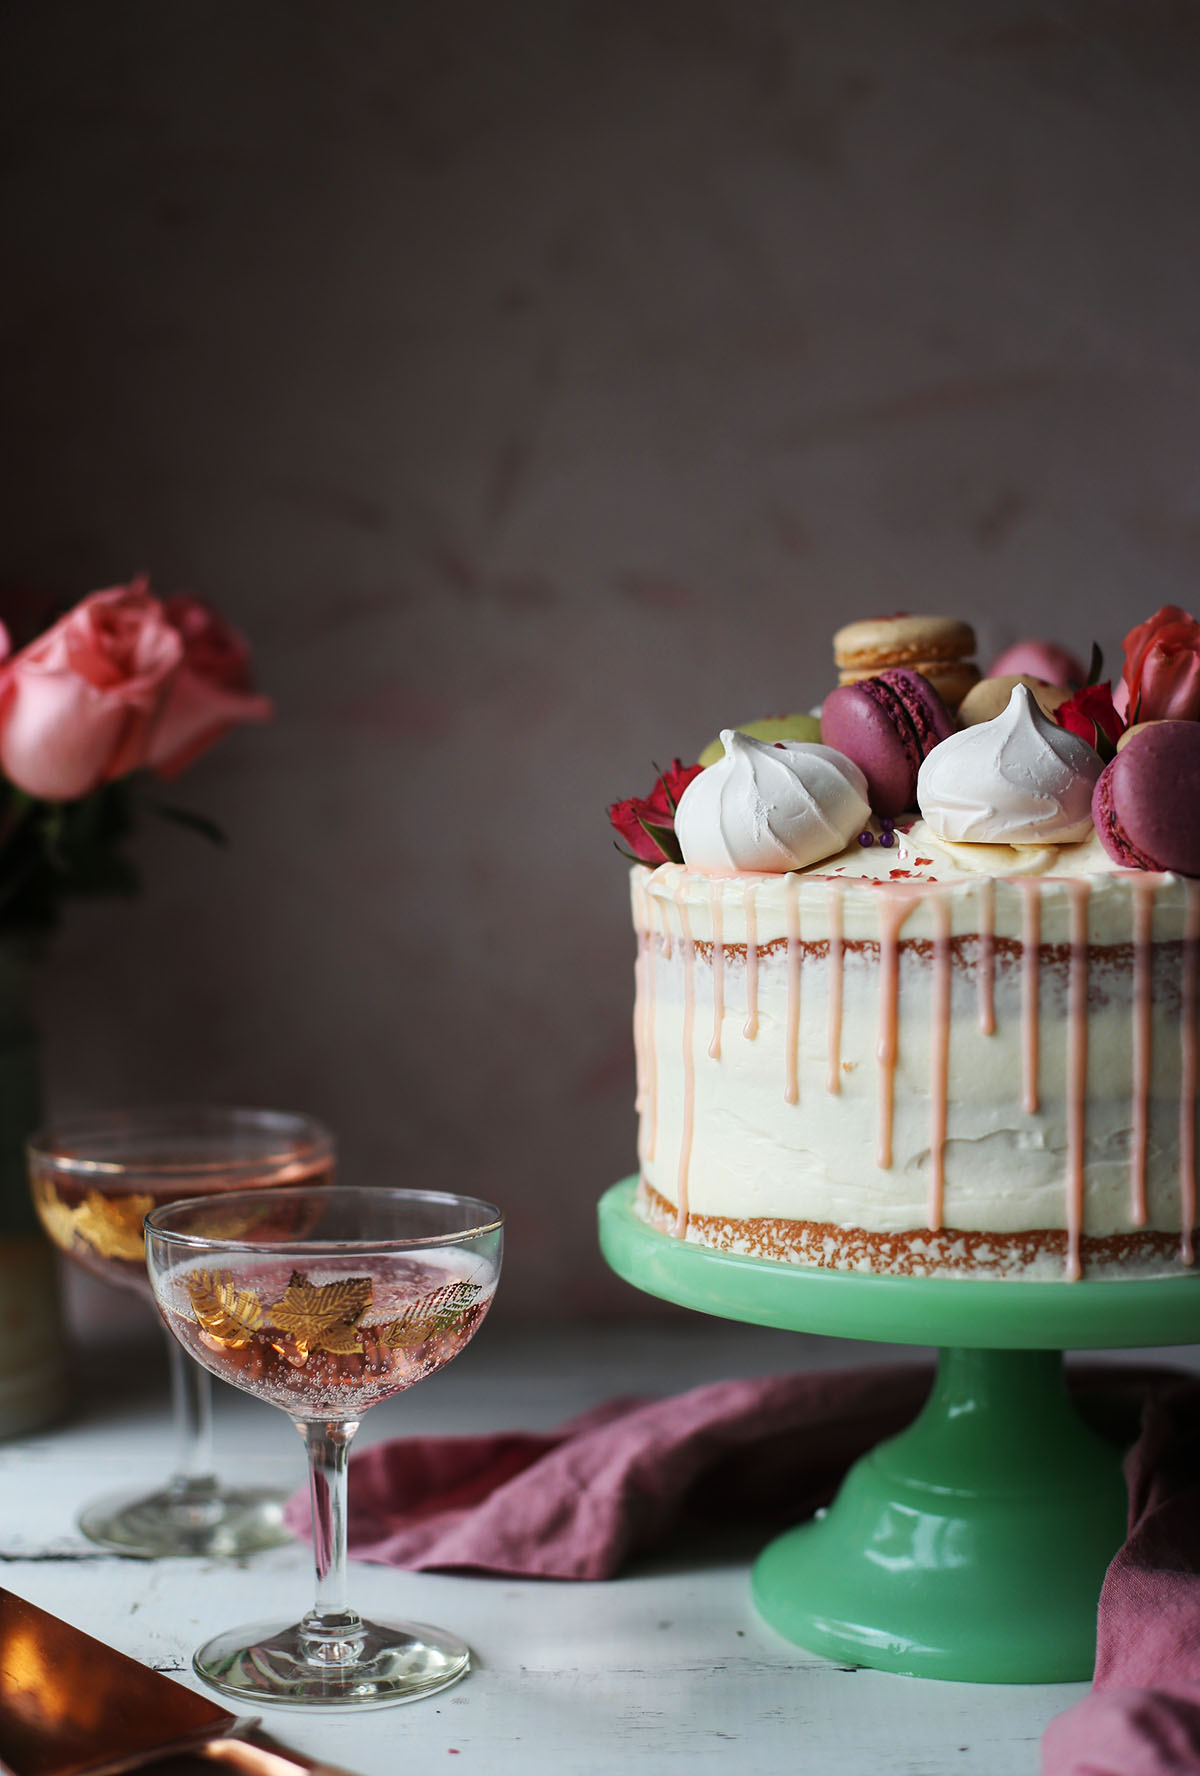 Champagne Cake with White Chocolate Frosting